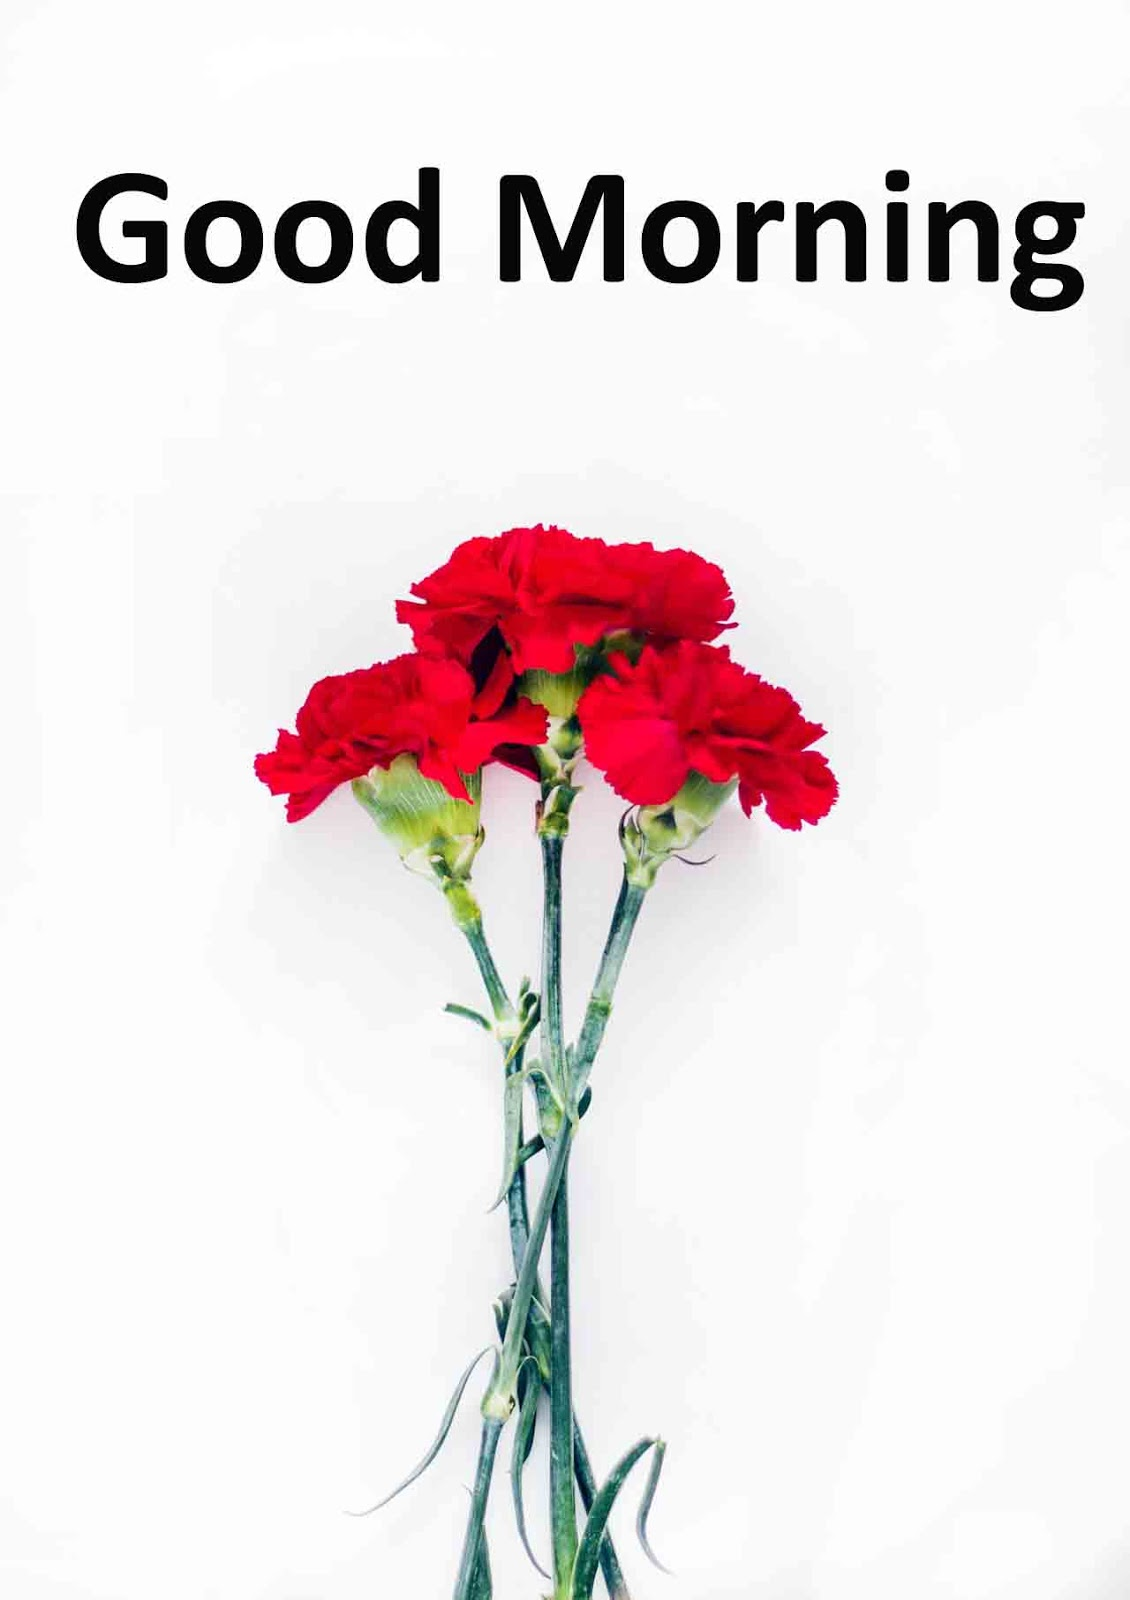 Latest Good Morning Images Wallpaper Photo Pics Hd Download For Whatsapp Beautiful Good Morning Quotes Pictures Photos Images Beautiful Good Morning Quotes Pictures